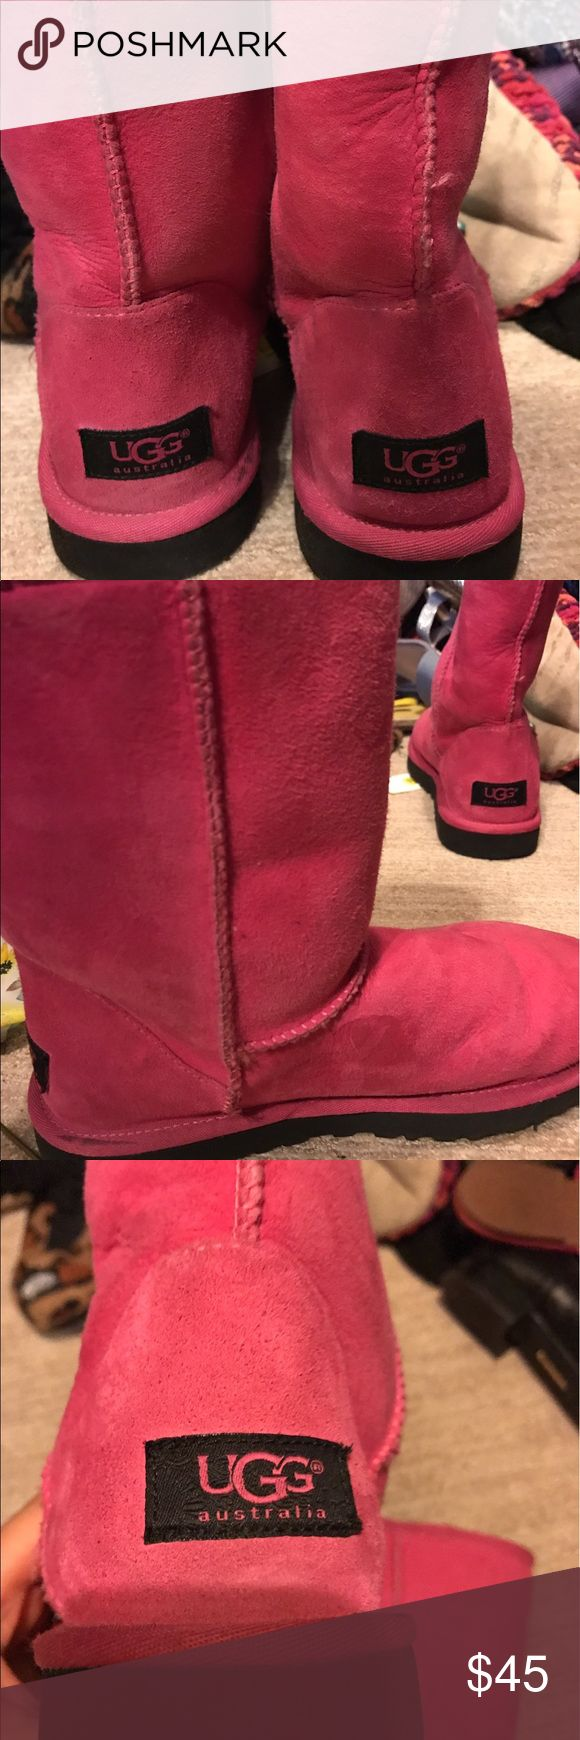 Pink and black ugg boots Worn a few times inside fur is really soft and In good condition. Got them in New York at an Ugg Store UGG Shoes Winter & Rain Boots